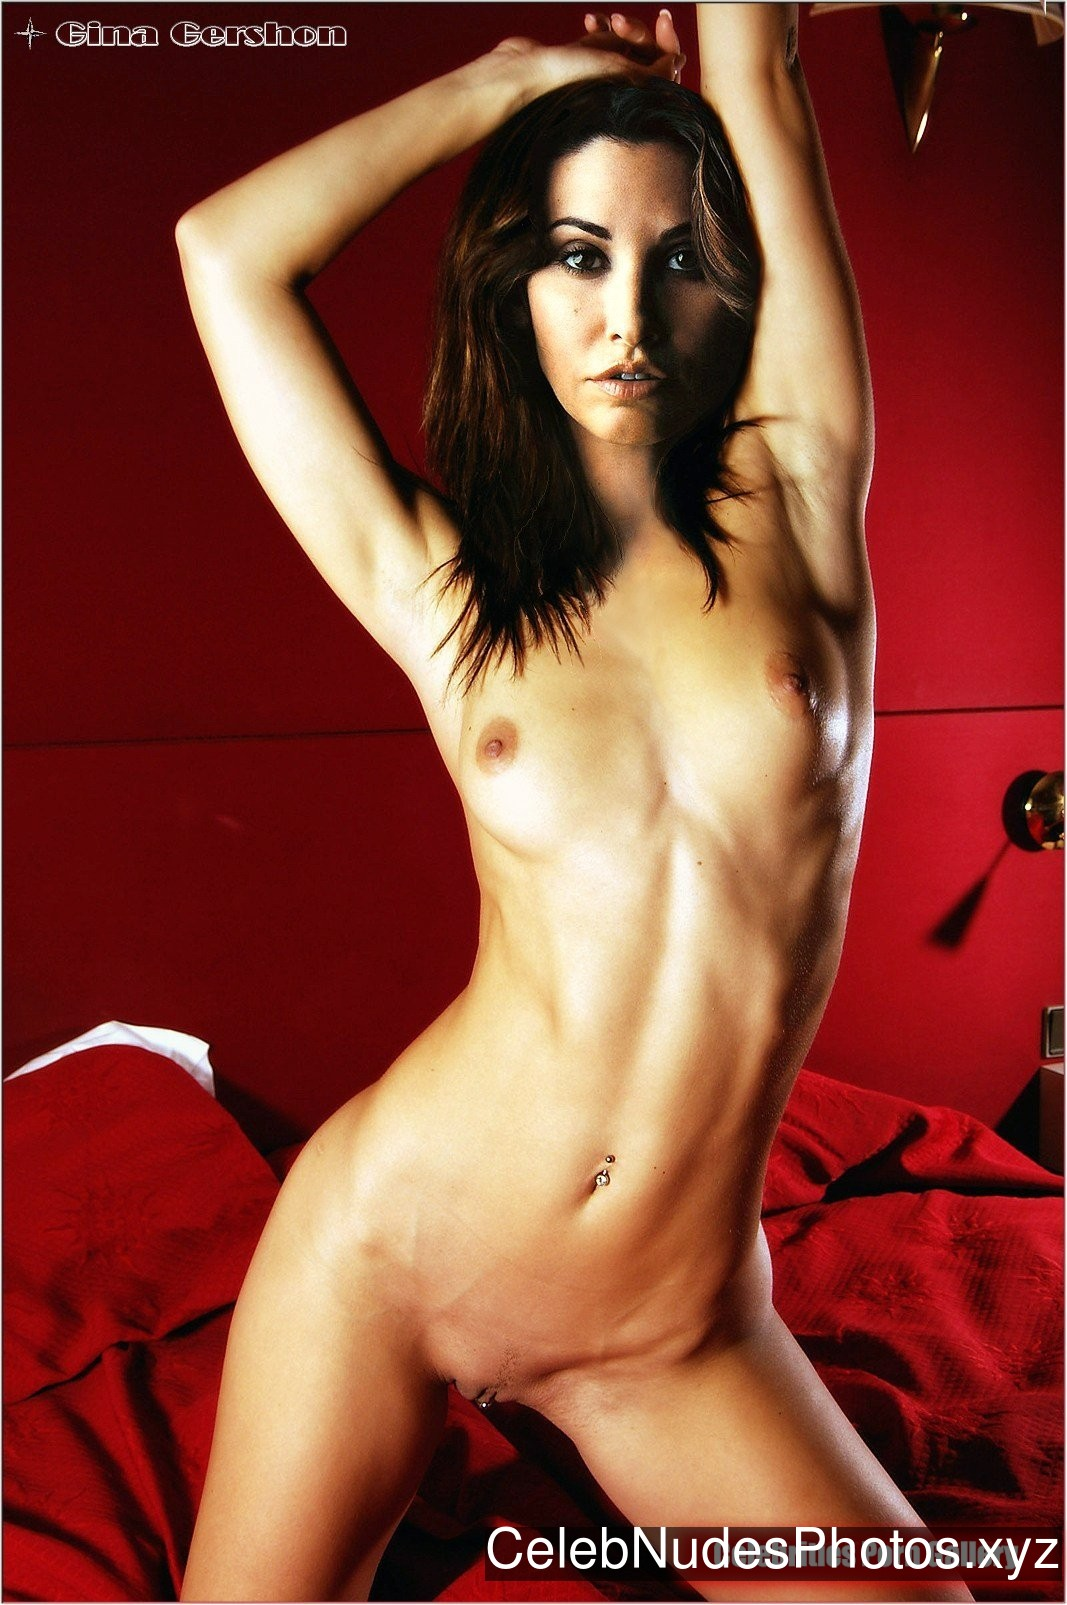 Sorry, Gina gershon nude real not despond!